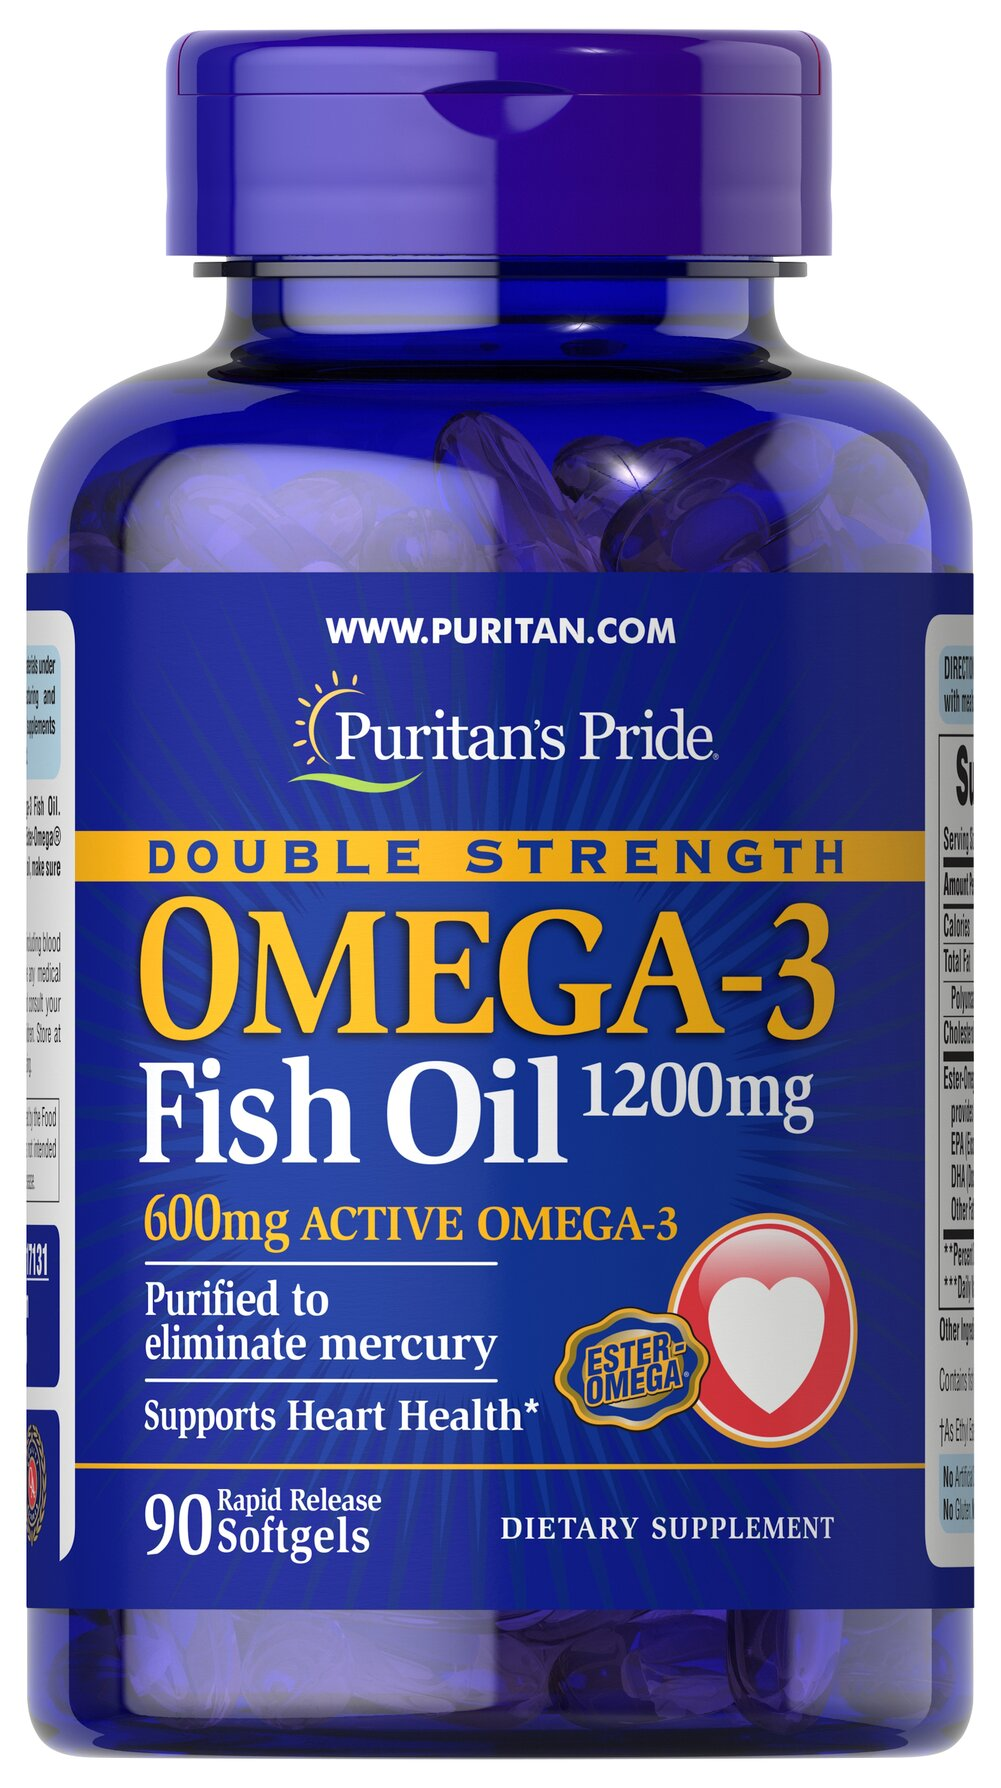 Double Strength Omega-3 Fish Oil 1200mg <p><span></span>Provides 600 mg of Active Omega-3.</p><p><span></span>Omega-3 fatty acids are important for heart health.**</p><p><span></span>Purified to eliminate mercury.</p><p>Each double strength Omega-3 fish oil softgel contains 1200mg of Ester-Omega® Fish Oil. This provides 600 mg of Total Omega-3 Fatty Acids comprising of DHA, EPA and other fatty acids. Supportive bu